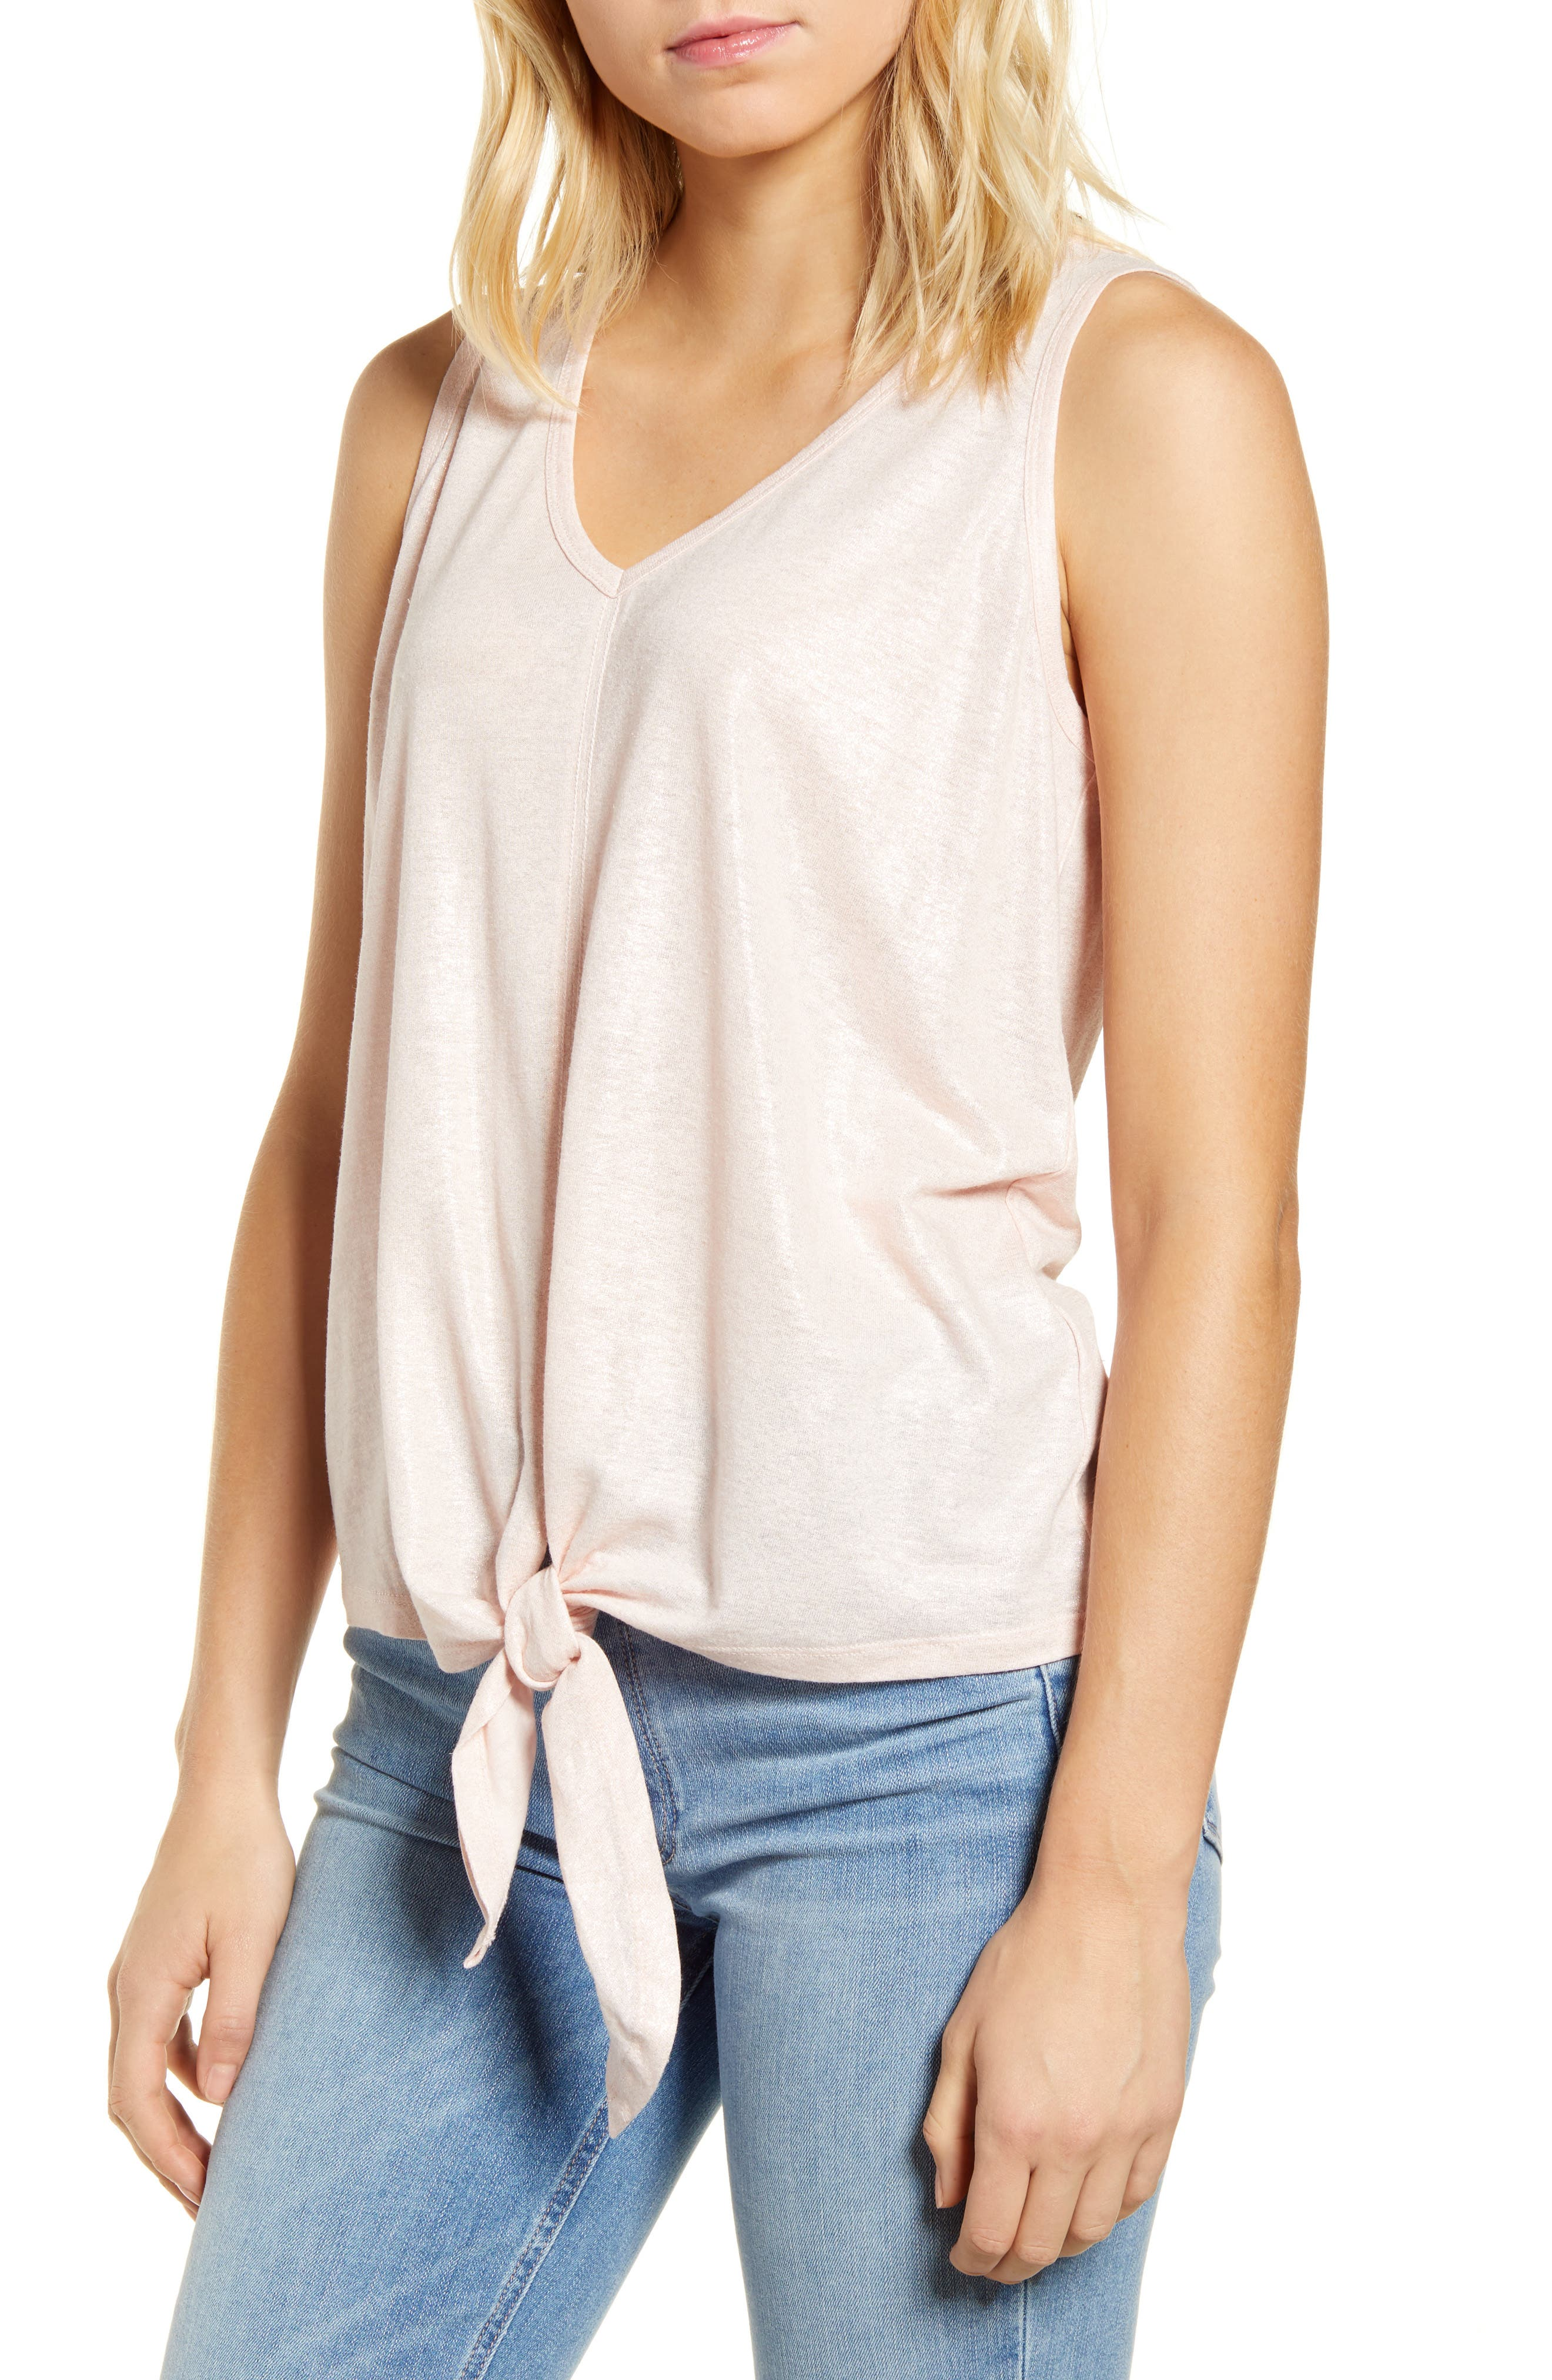 A tied waist shapes this drapey top, done in lustrous foiled jersey in a summery, sleeveless silhouette. Style Name: Wit & Wisdom V-Neck Tie Waist Shimmer Sleeveless Top (Plus Size) (Nordstrom Exclusive). Style Number: 6011211. Available in stores.